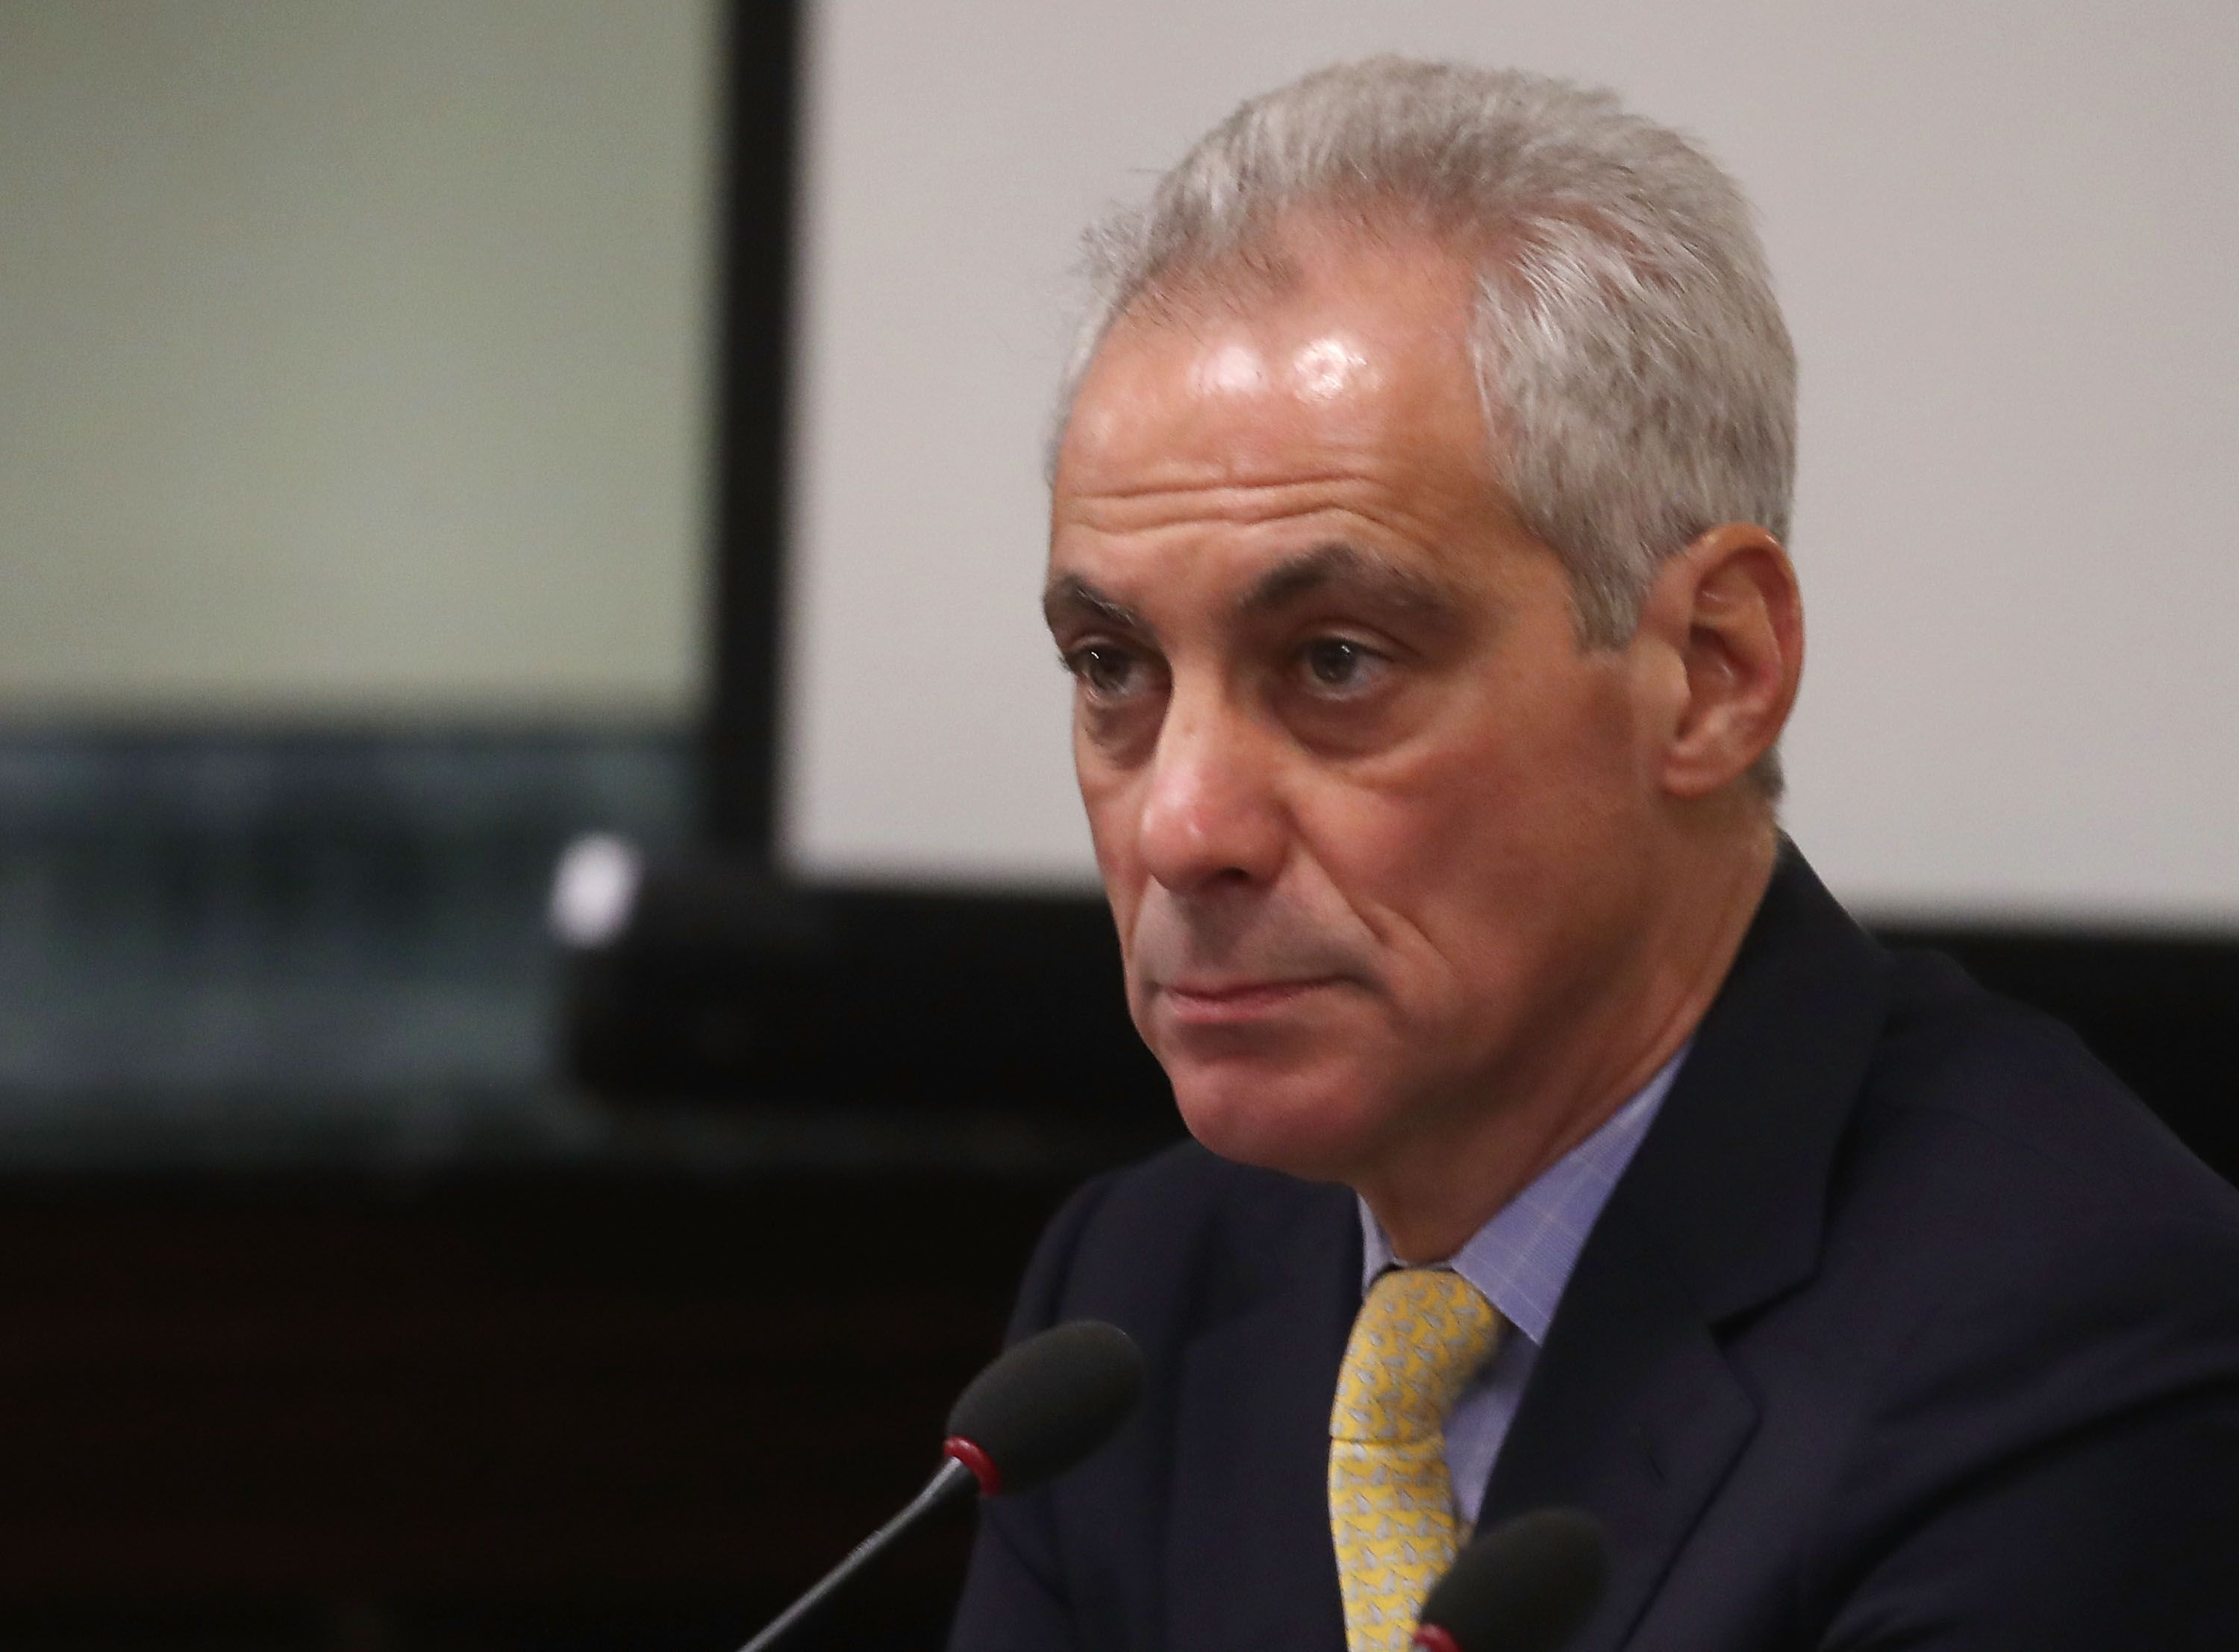 Chicago sues US drug distributors over opioids #Photo https://siliconeer.com/current/chicago-sues-us-drug-distributors-over-opioids/